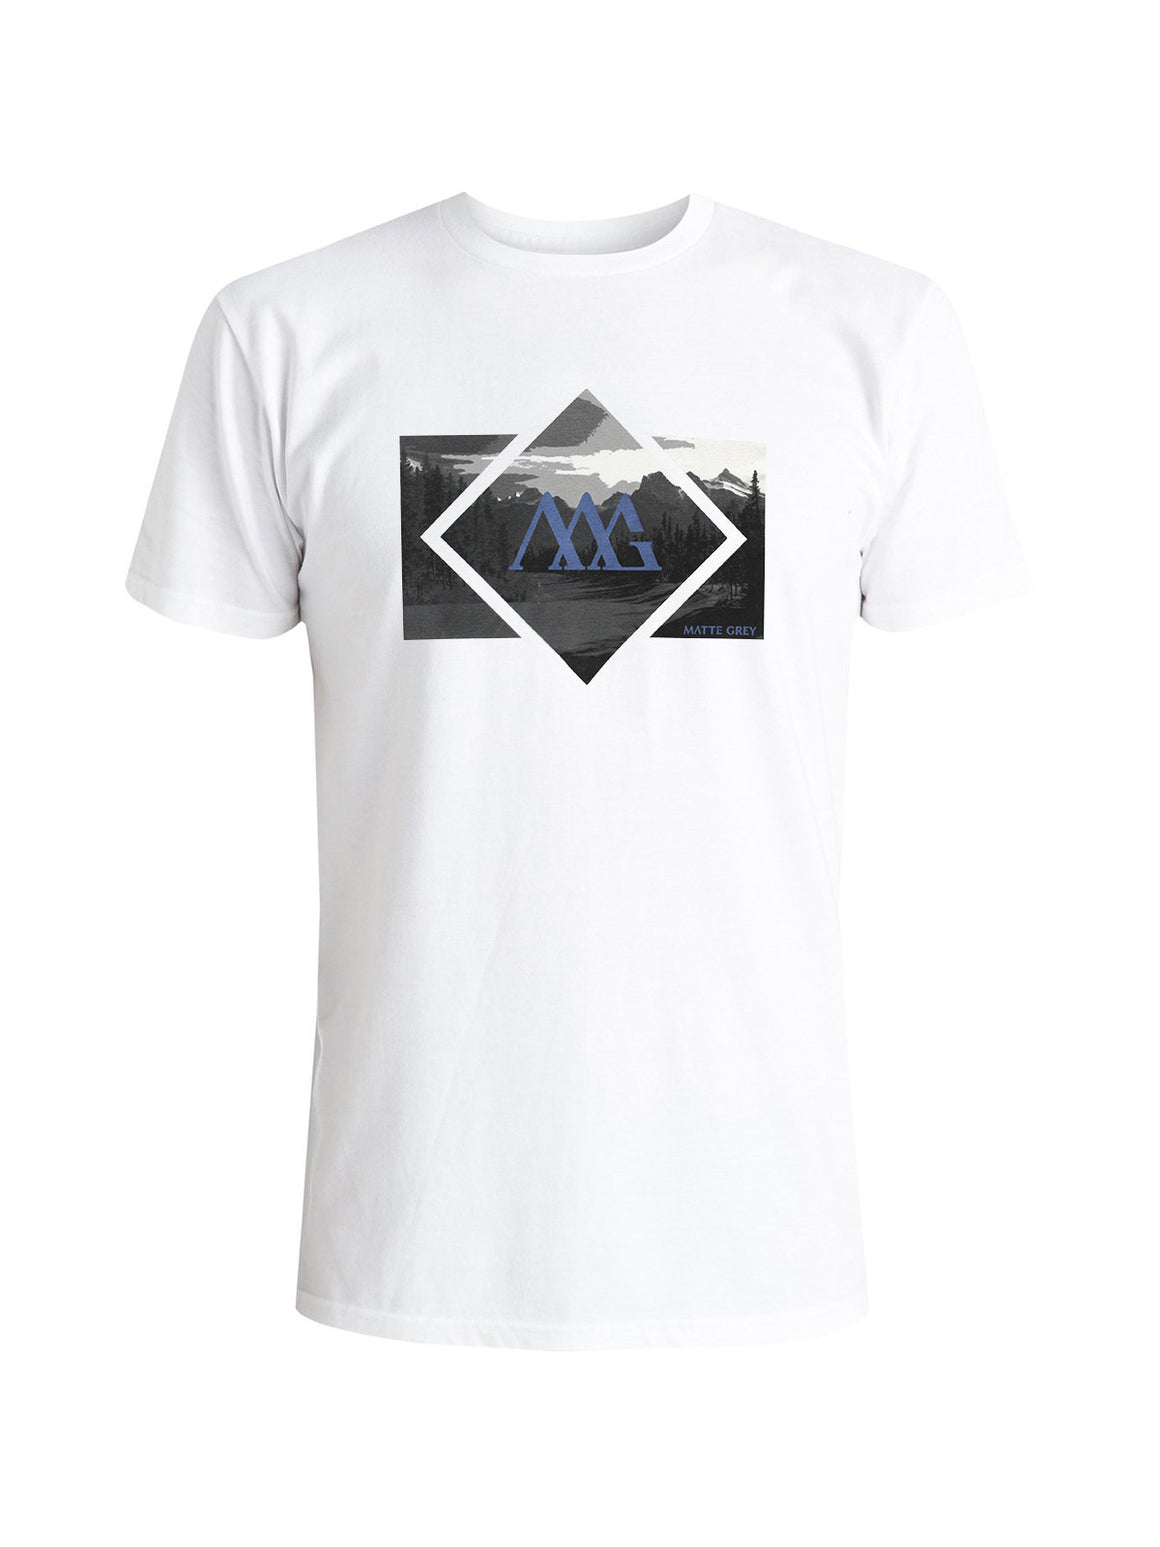 Diamond Vista Tee Shirt - White (Black / Dk Teal)